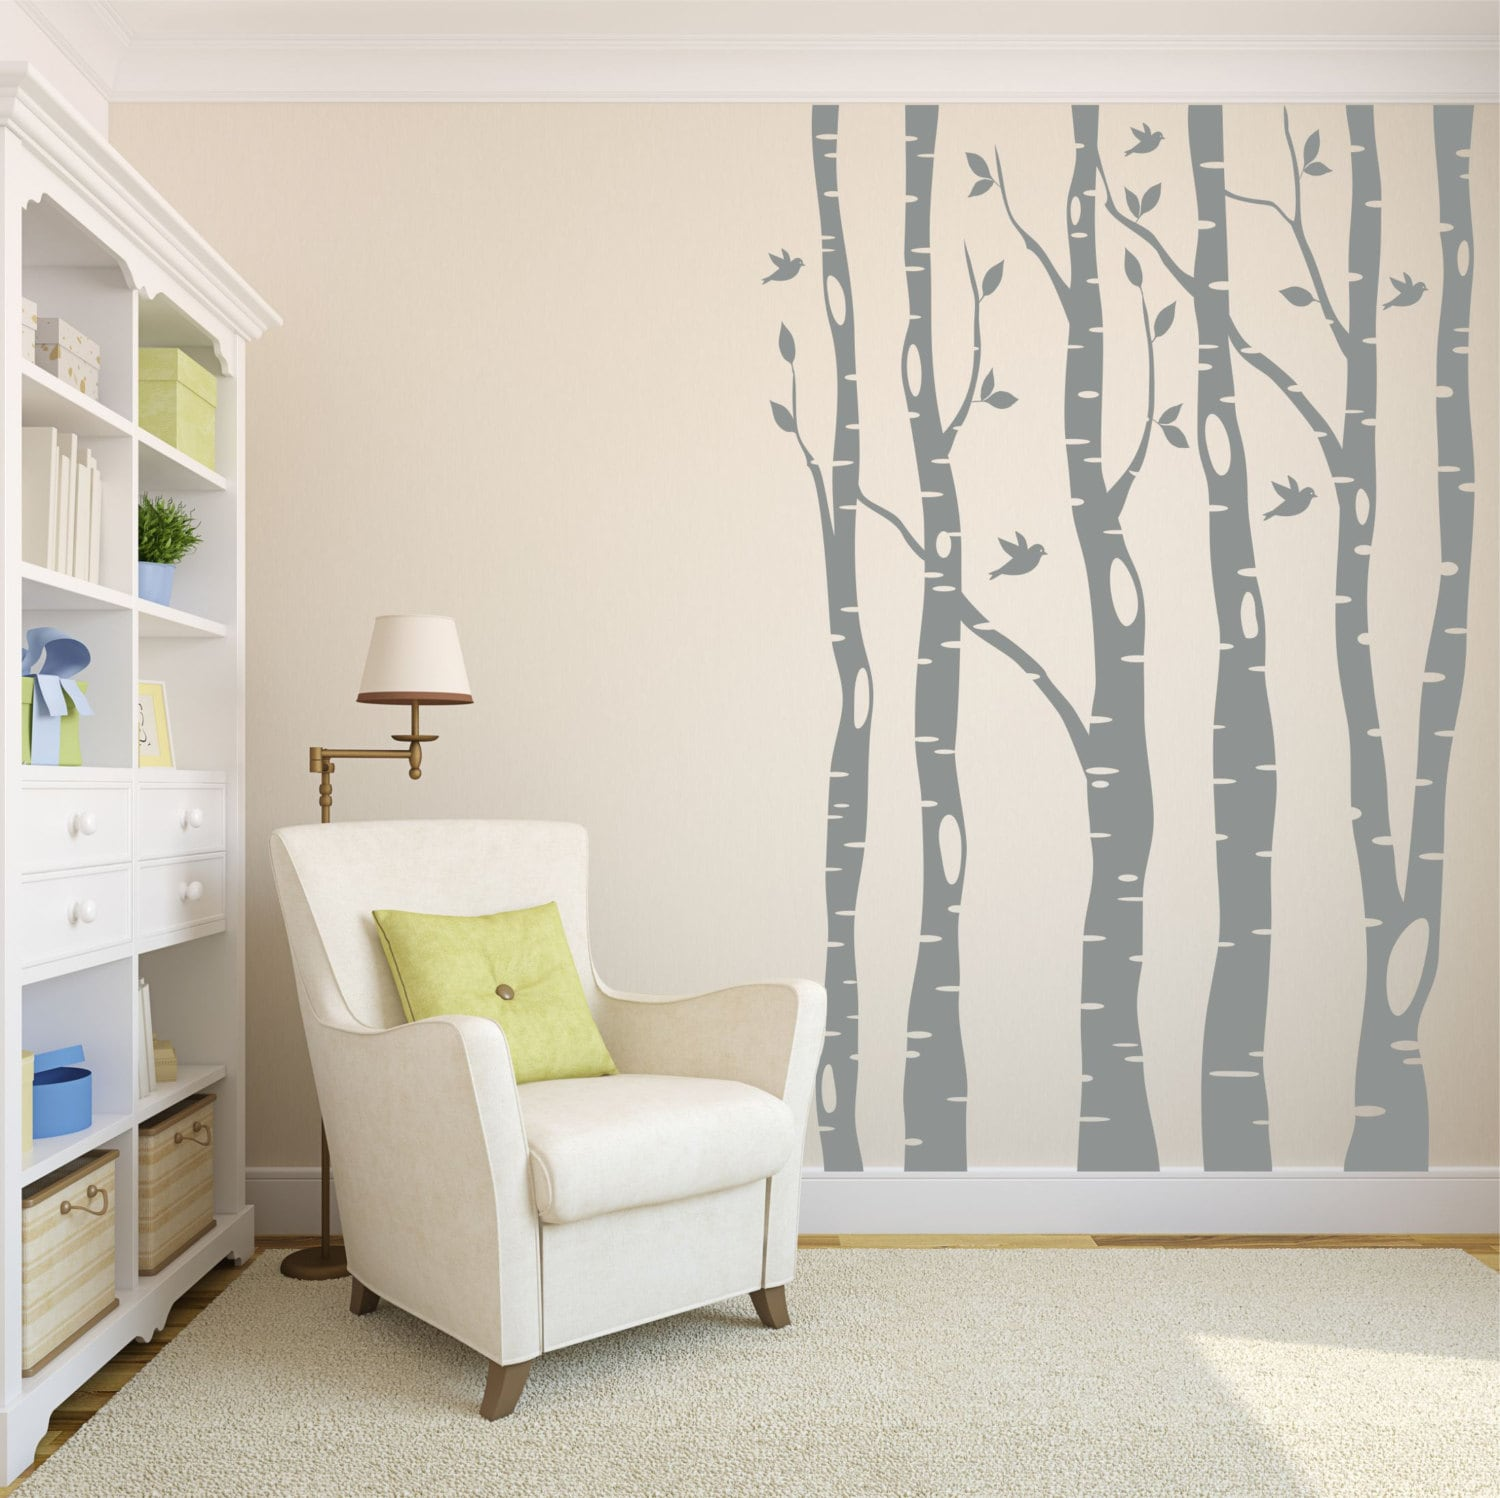 Tree wall decals birch tree decals living room decor zoom amipublicfo Gallery